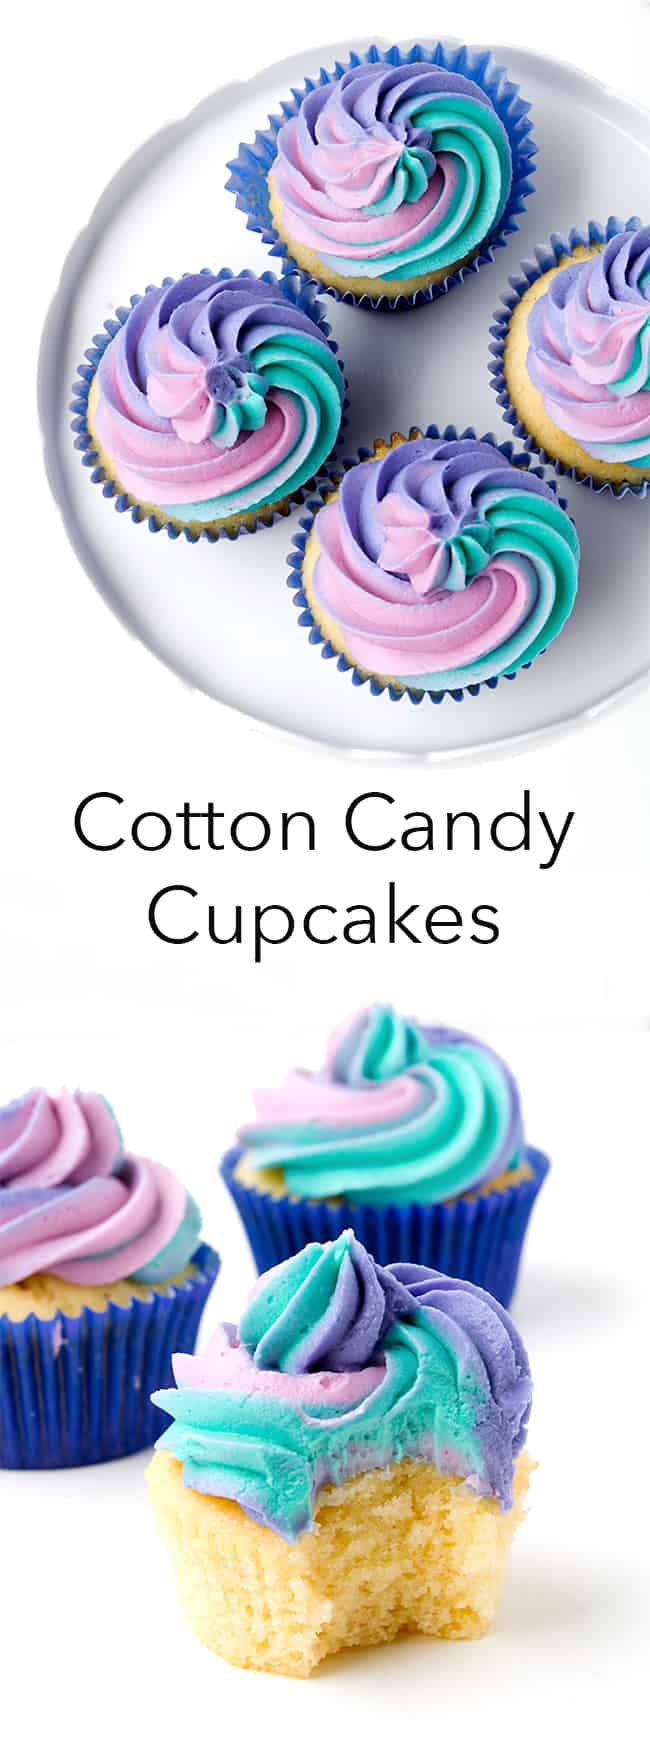 Cotton Candy Cupcakes | Sweetest Menu